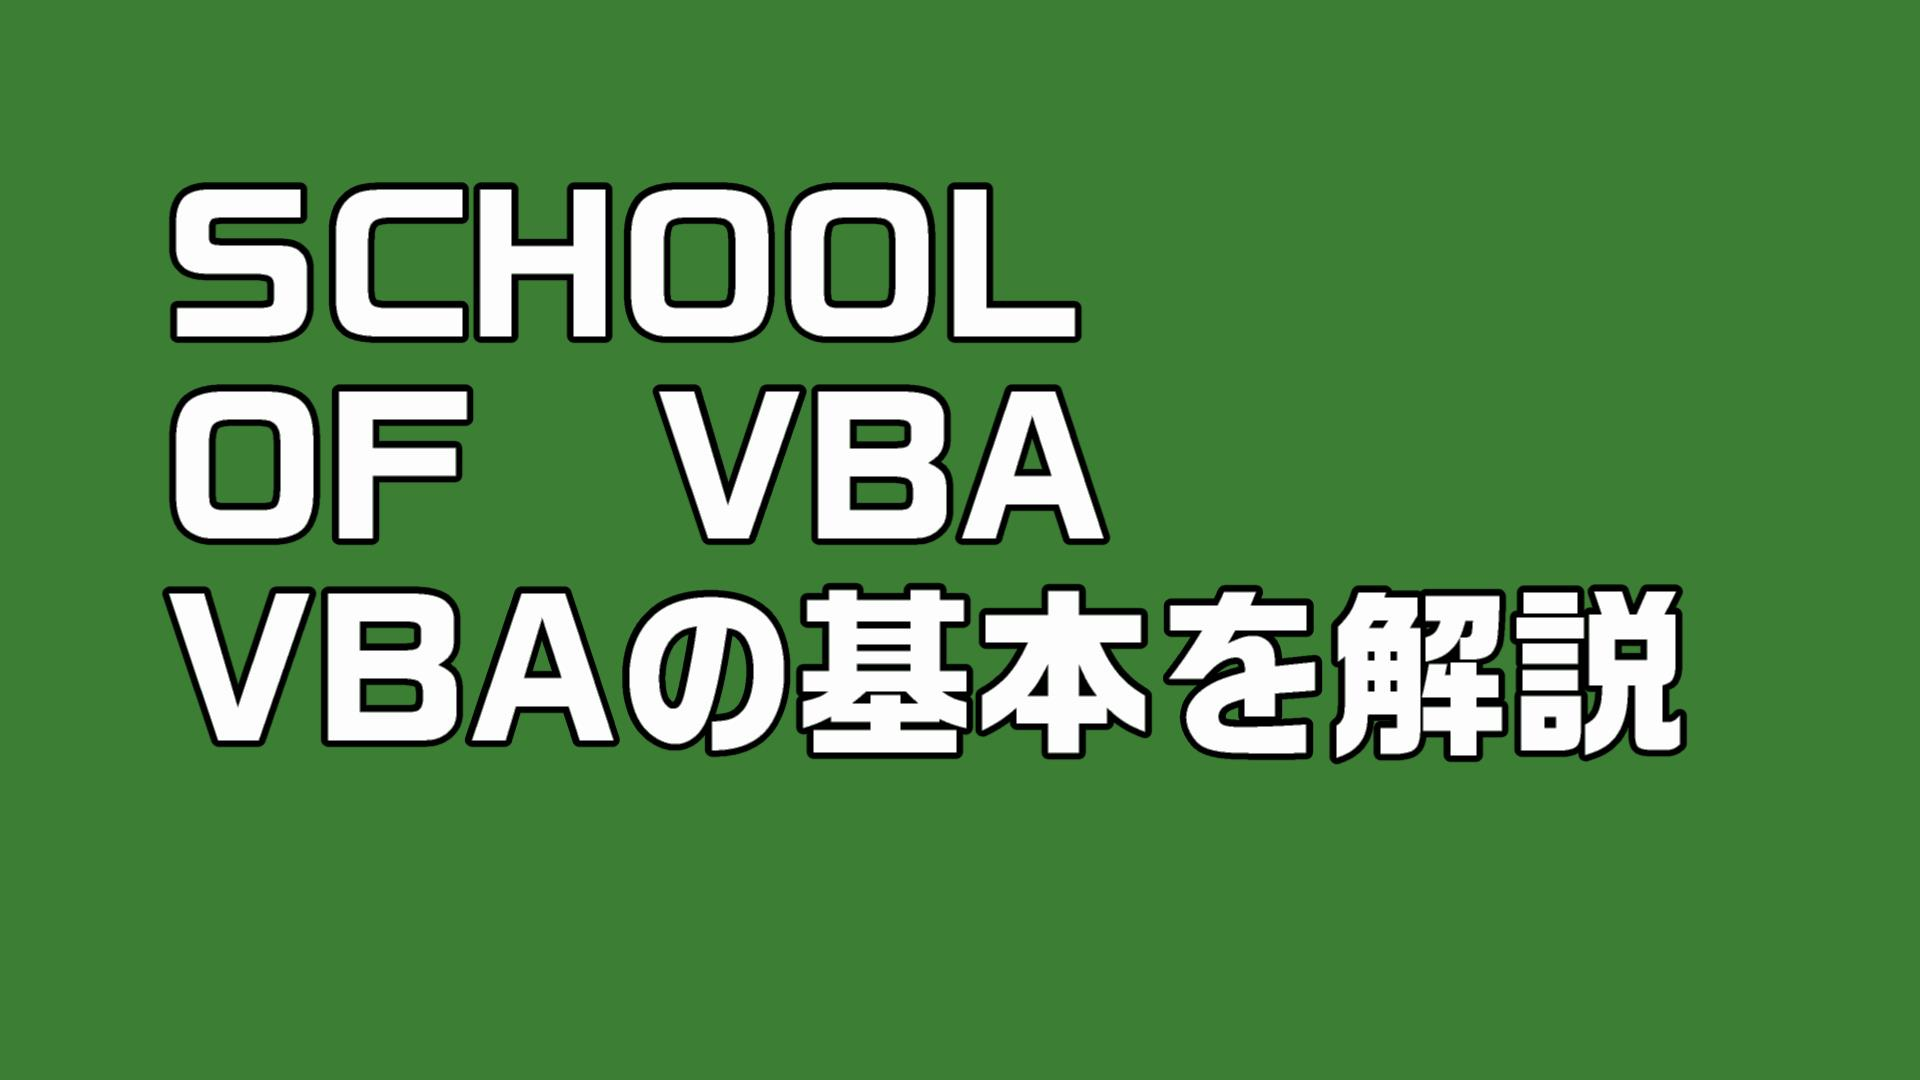 SCHOOL OF VBA